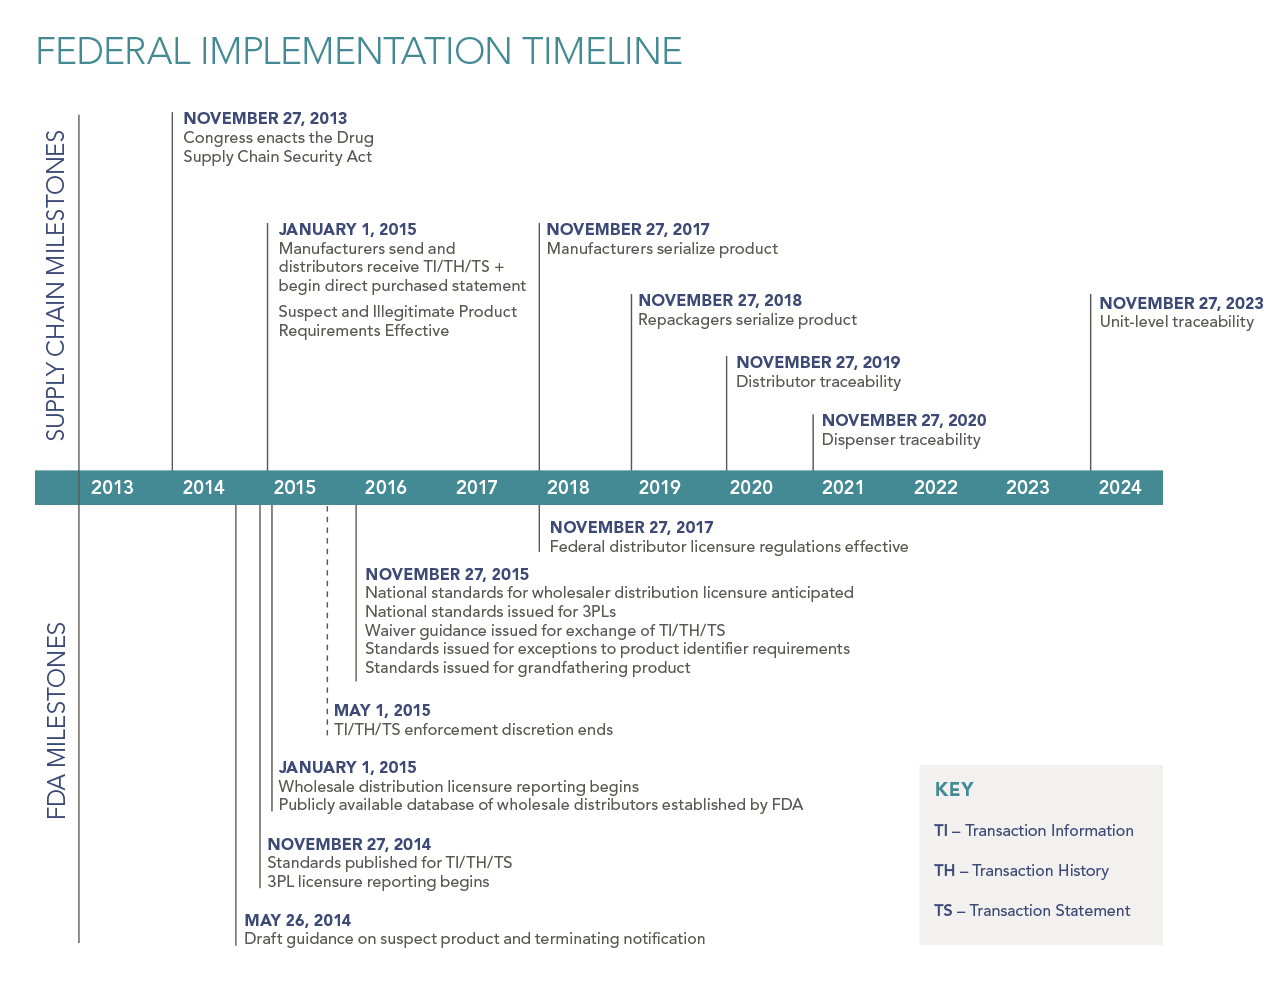 J&J's DSCSA Implementation Timeline